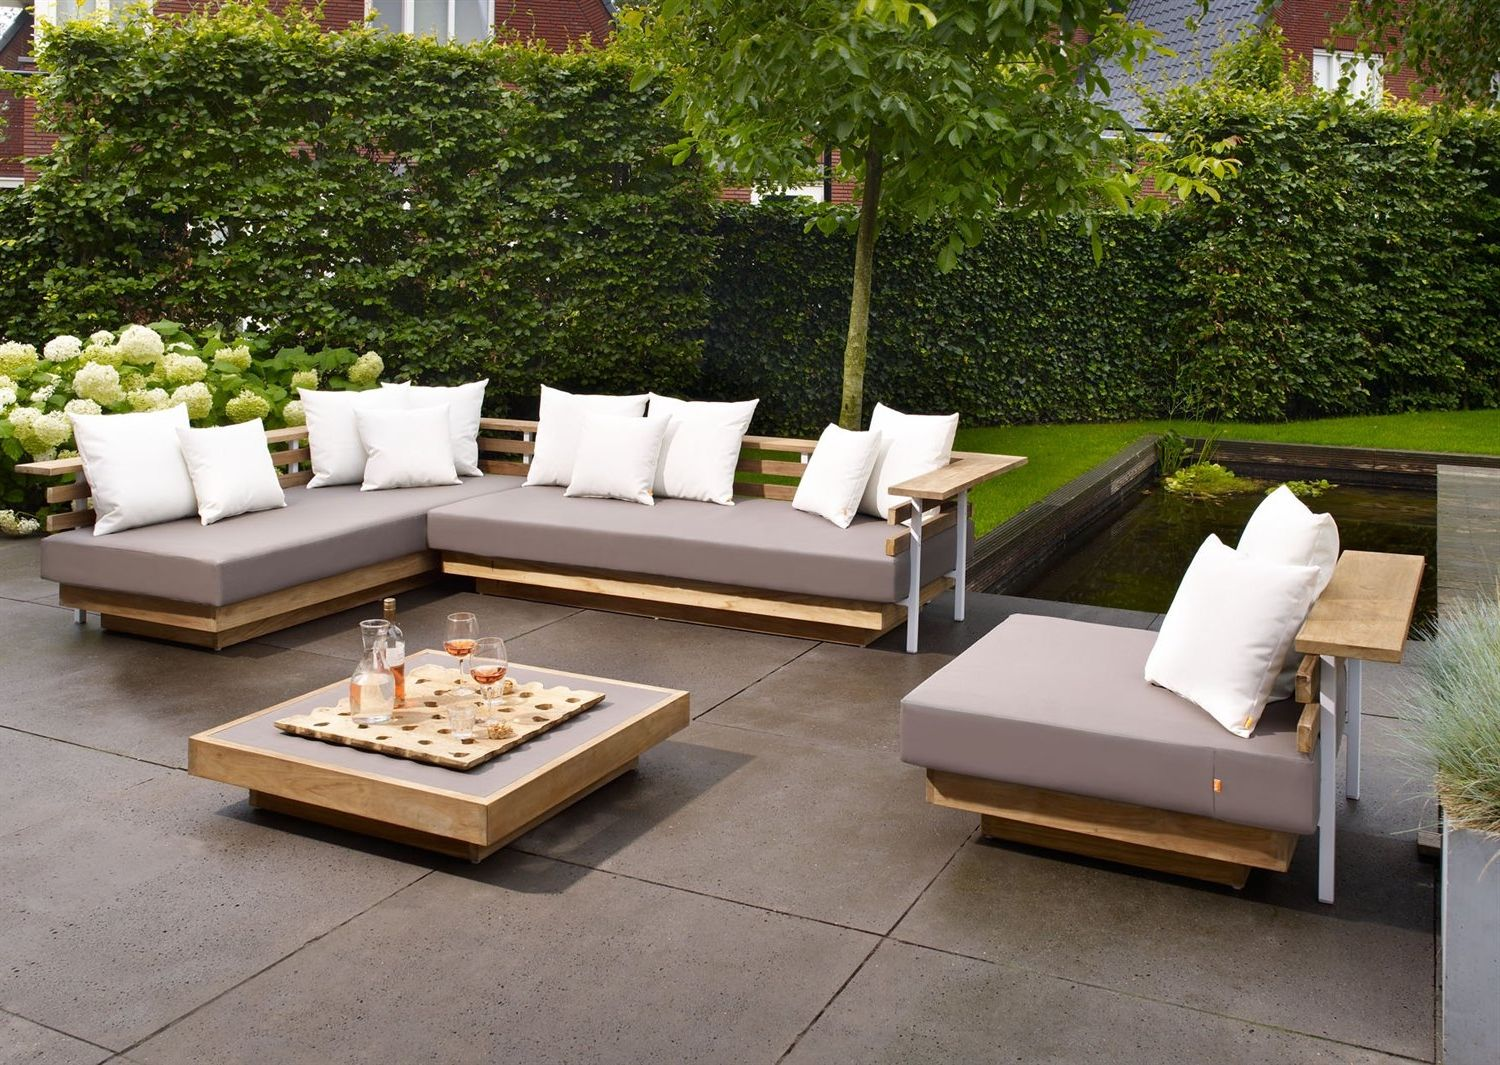 Inspiration Patio Lounge Furniture Interior Designing